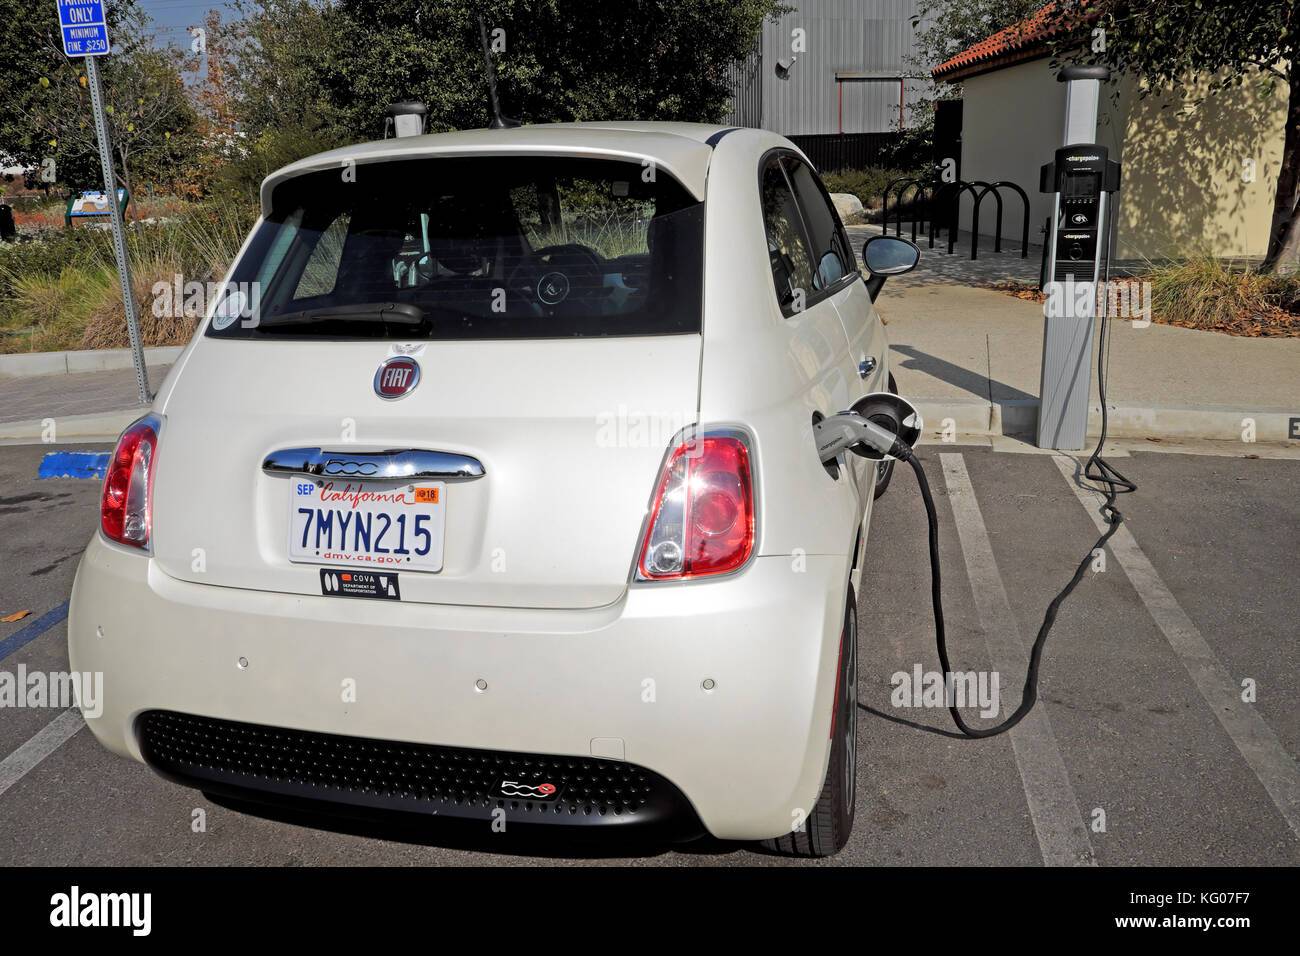 Fuel efficient small Fiat electric car recharging battery at charging station parking lot in East Los Angeles, California - Stock Image